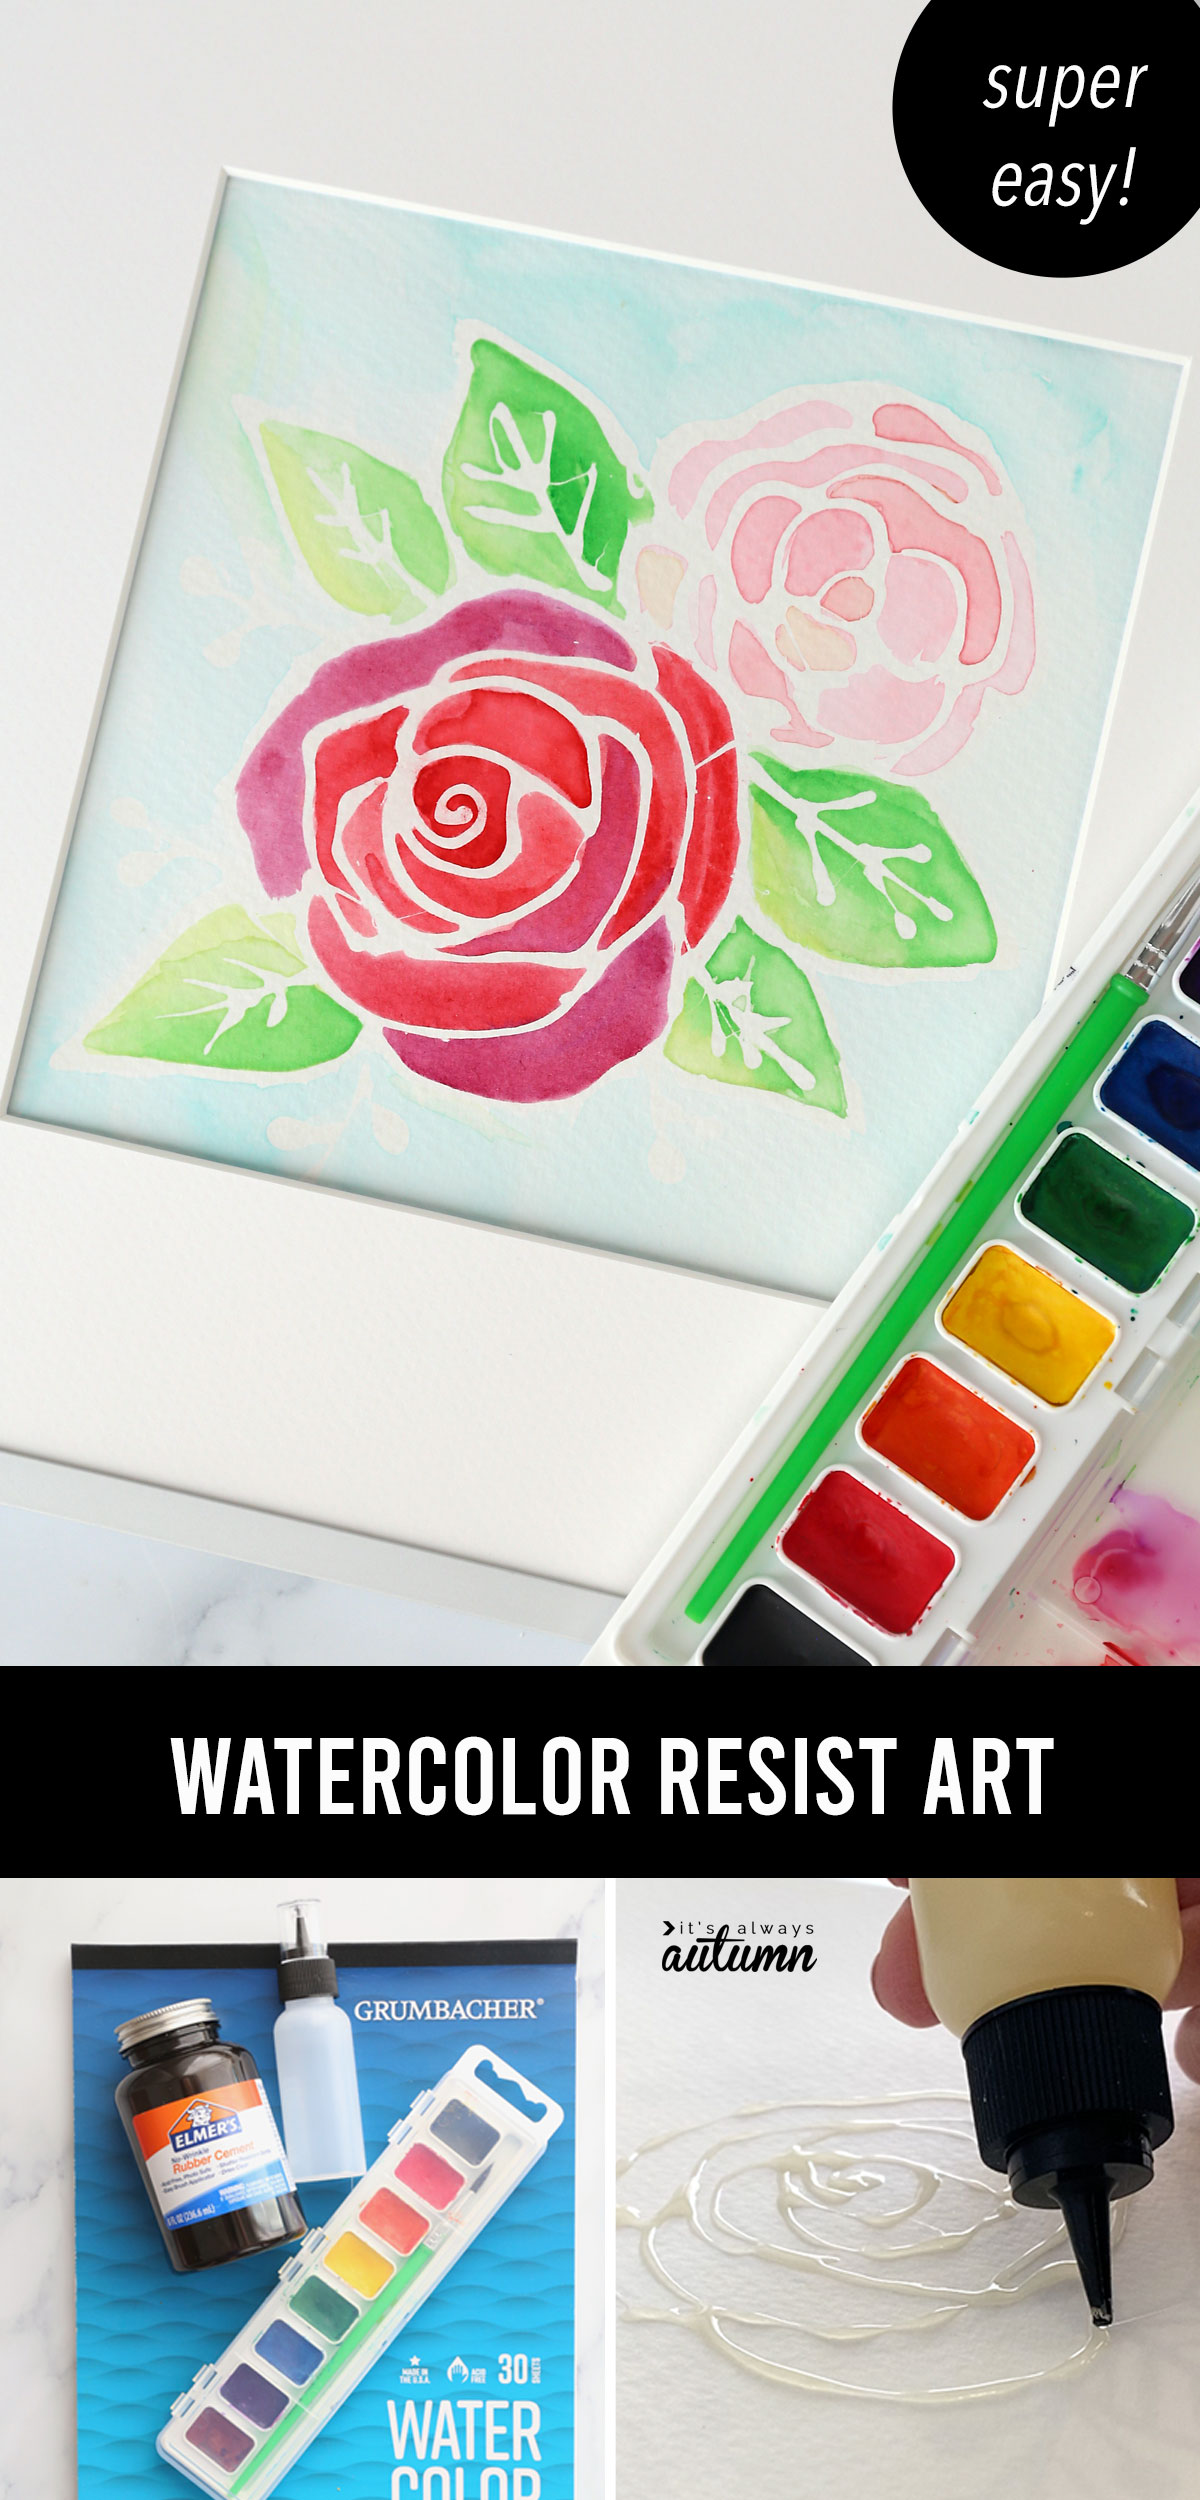 Floral watercolor painting with text: watercolor resist art, super easy!